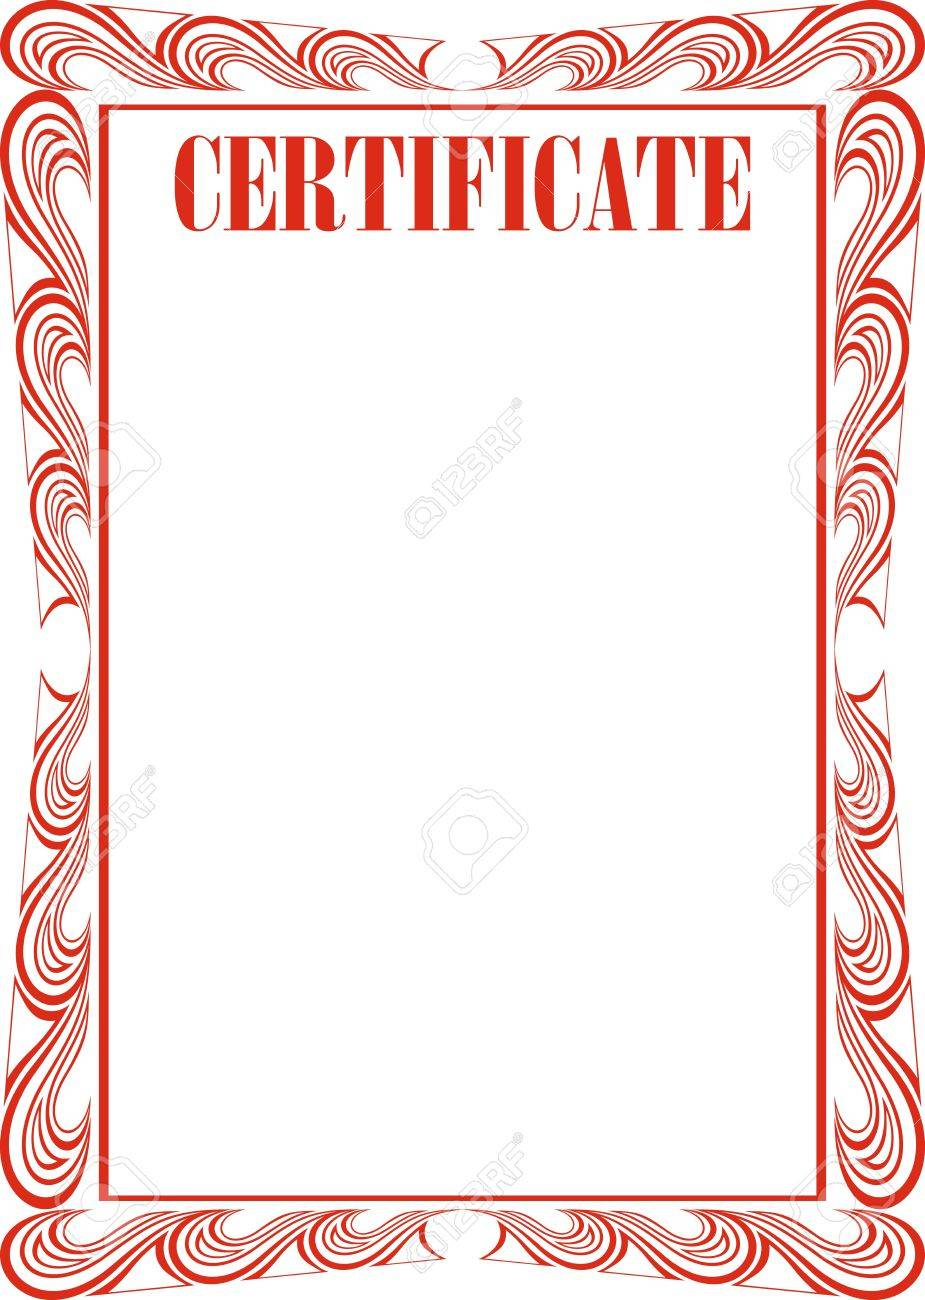 Certificate Frame Isolated On The White Background Royalty Free ...